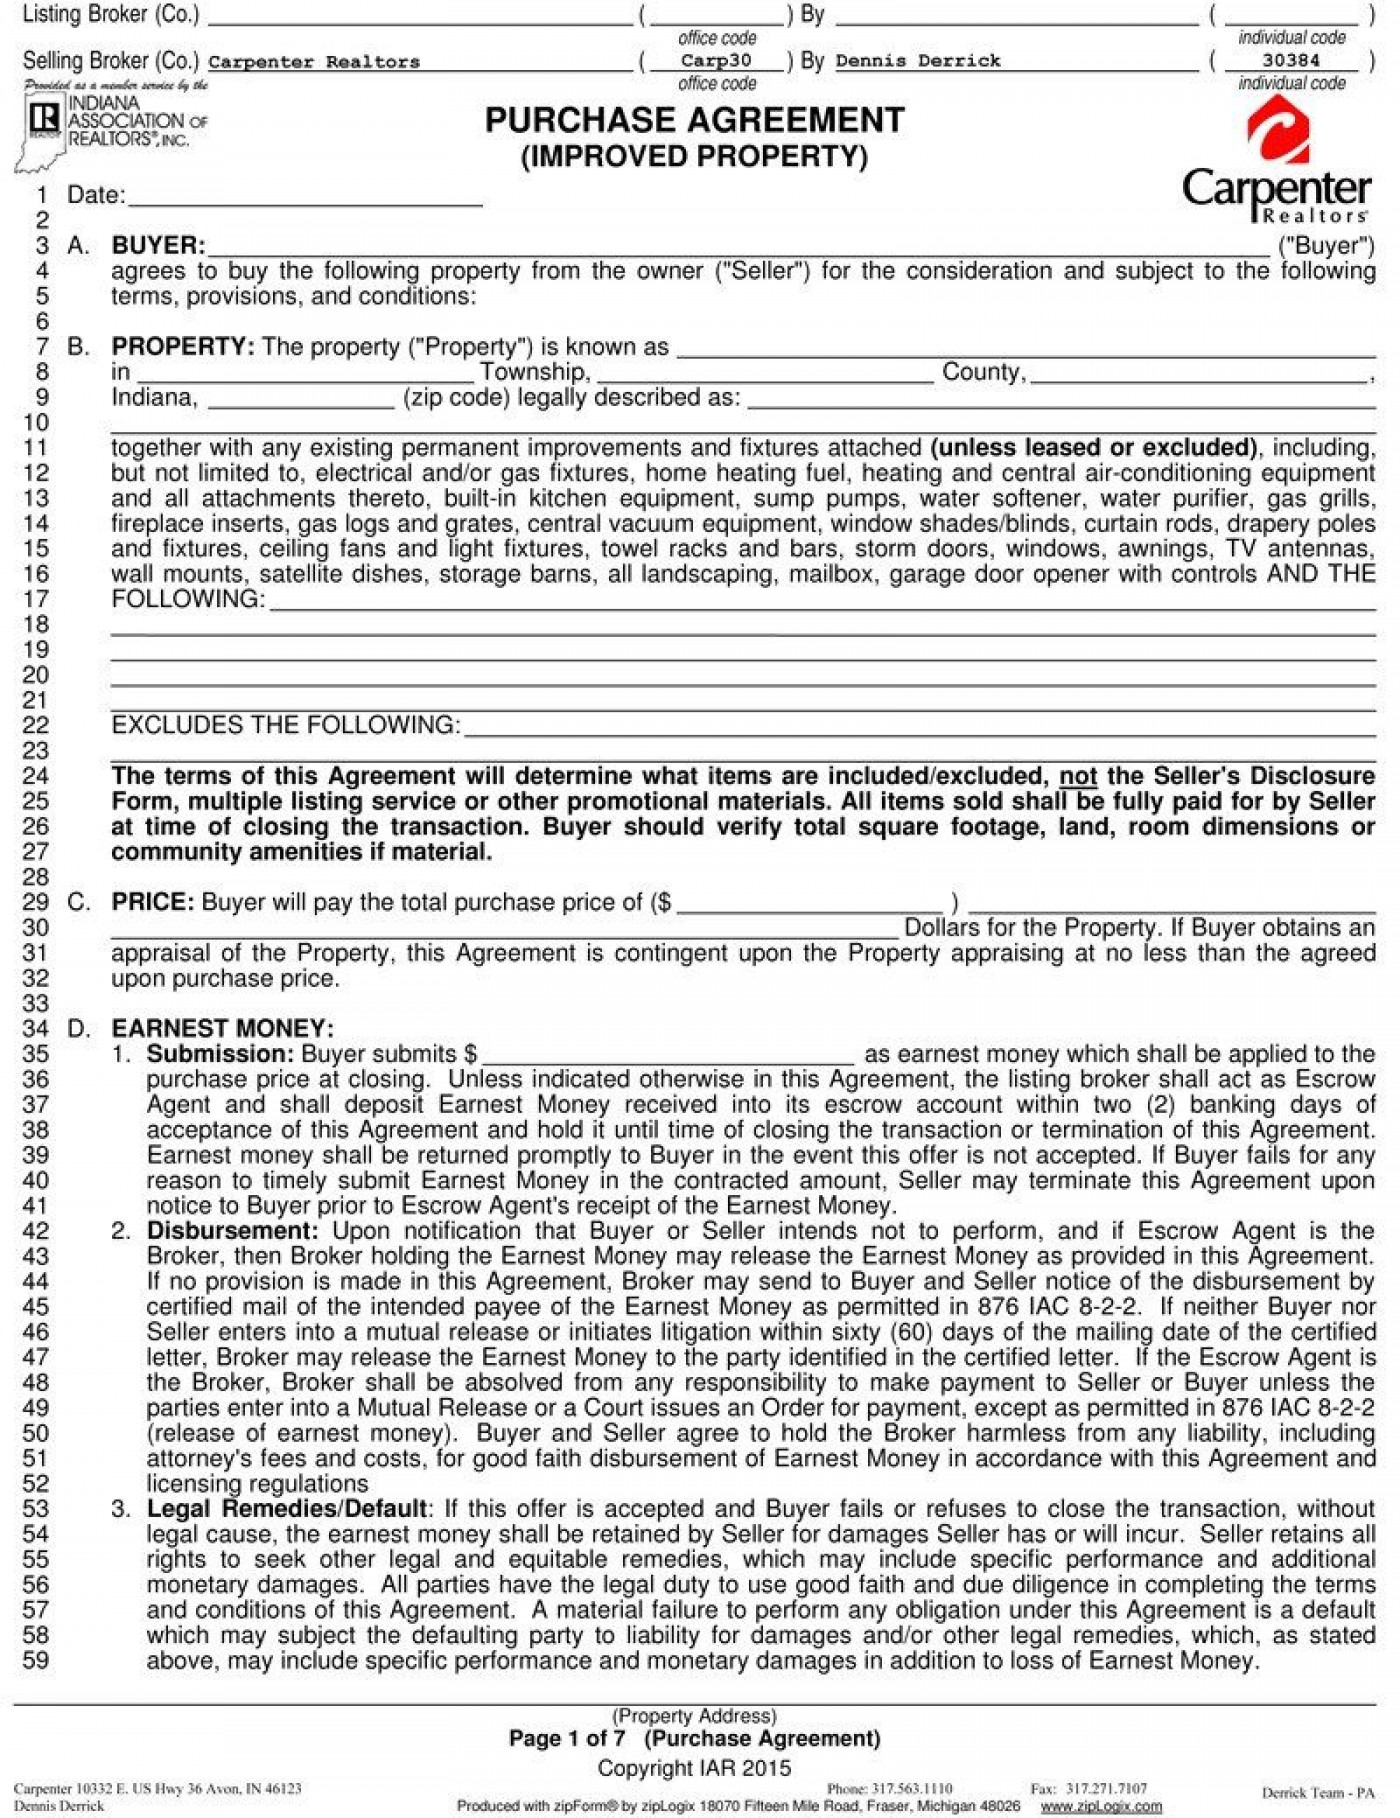 003 Wonderful Home Purchase Agreement Template Michigan Picture 1400